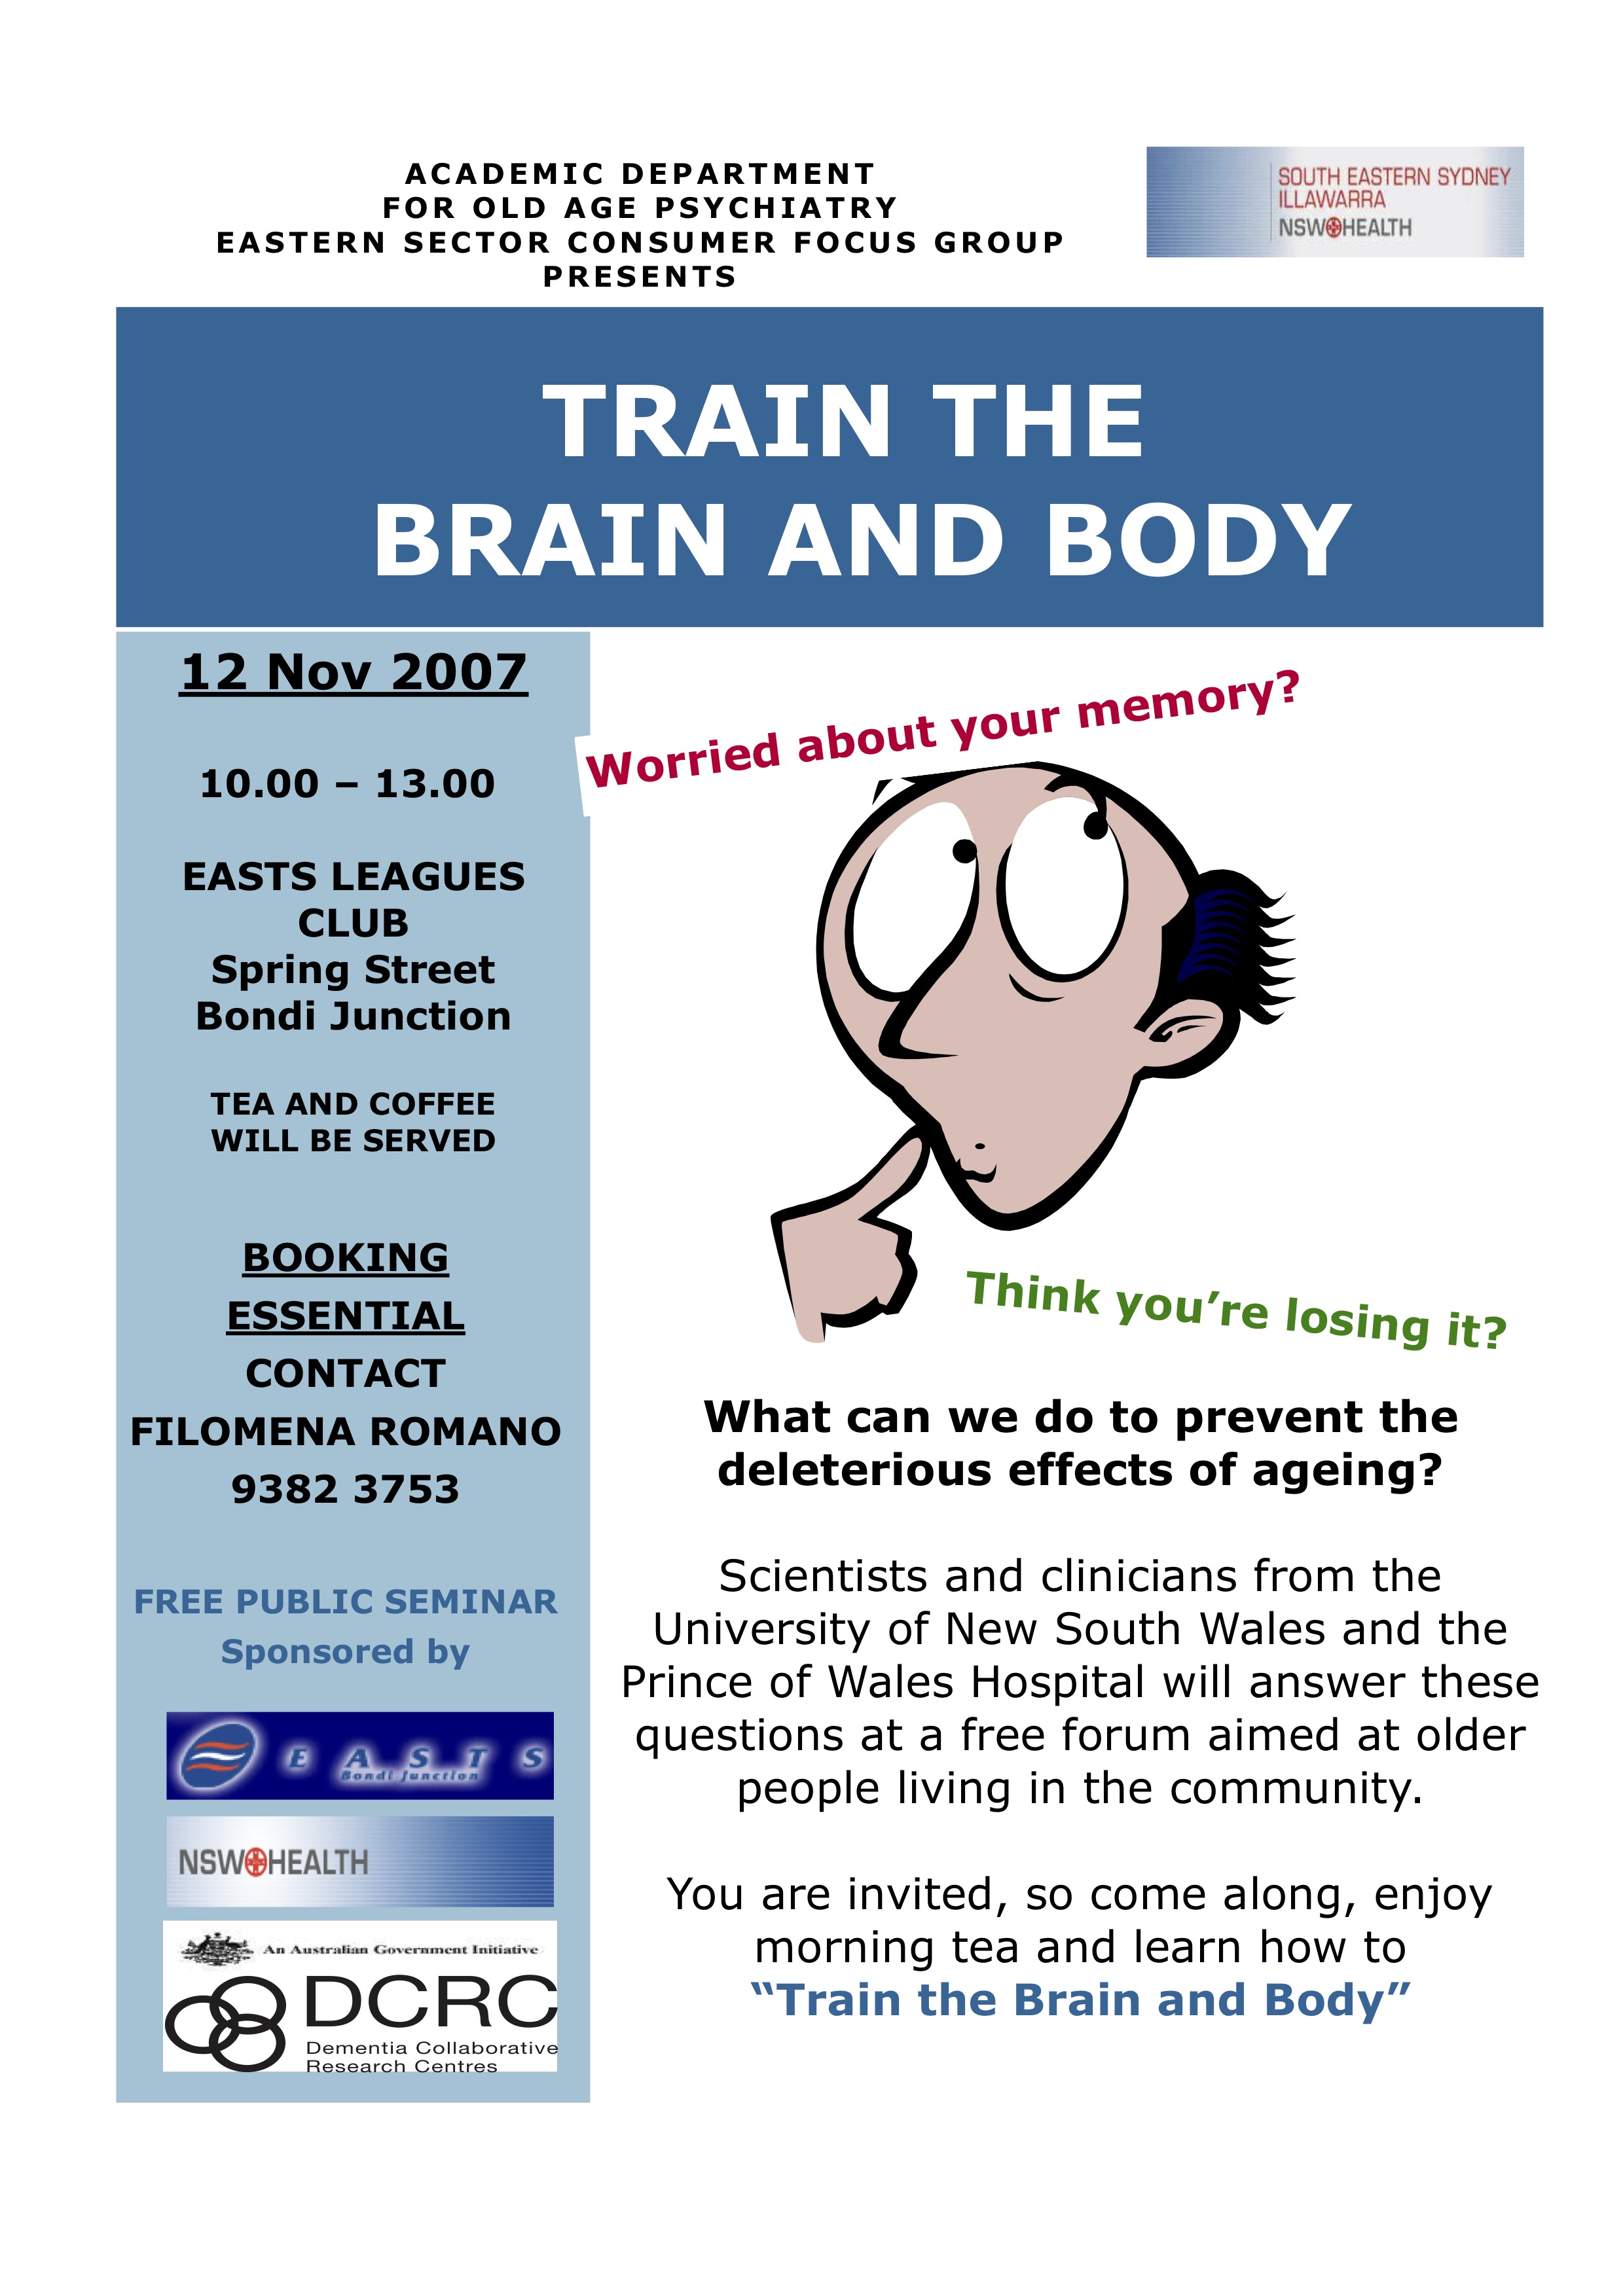 2007 TRAIN THE BRAIN AND BODY copy.jpg